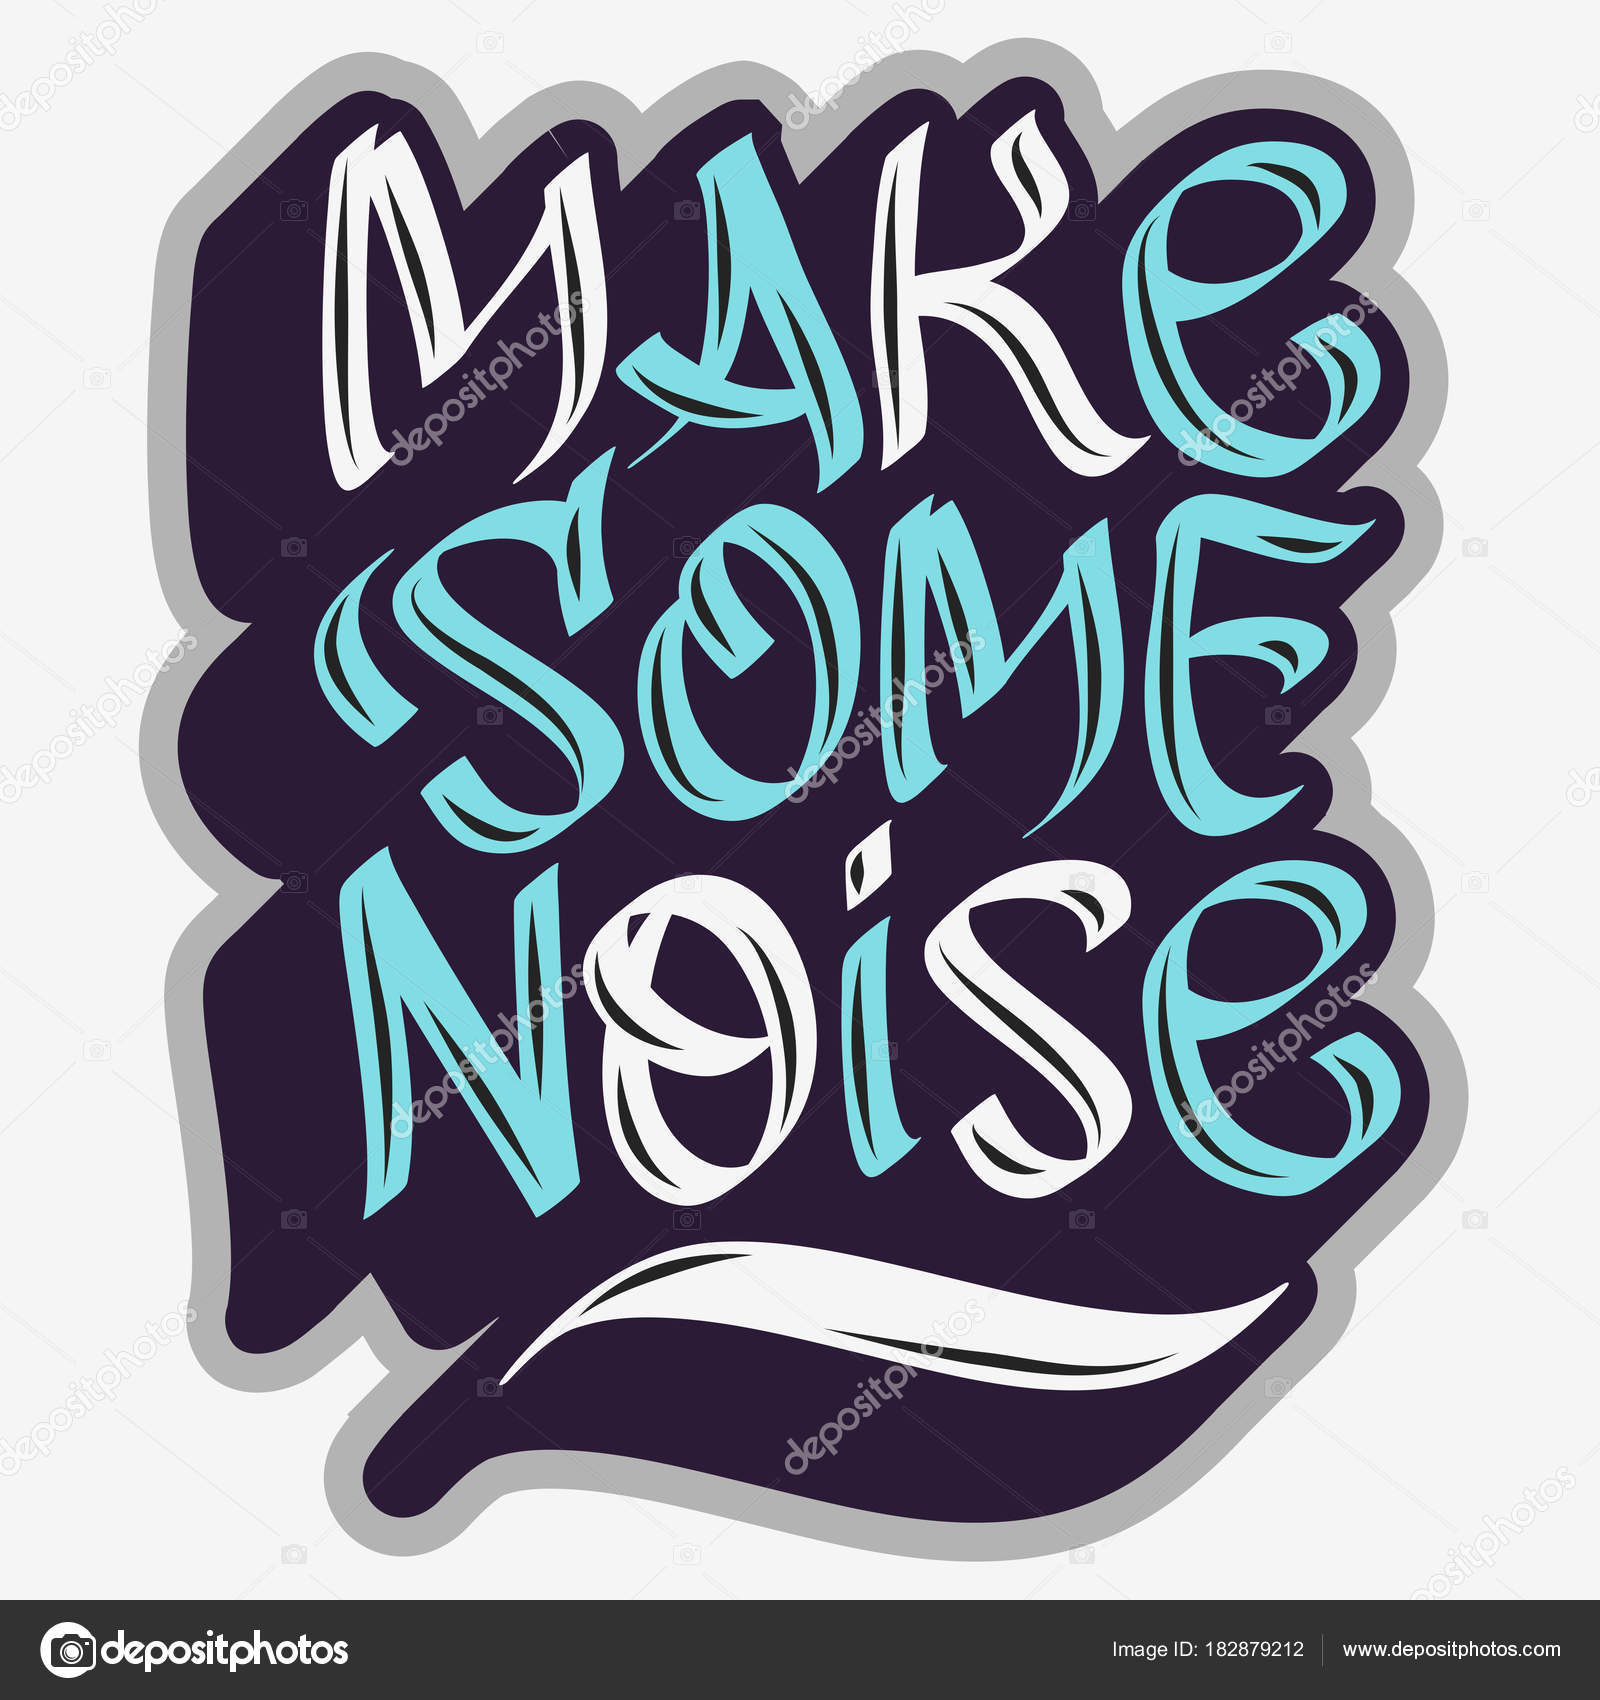 dc54c7a5 stock illustration. Make Some Noise Slogan Typographic Lettering Type Design  Graffiti Tag Style. — Stock Vector